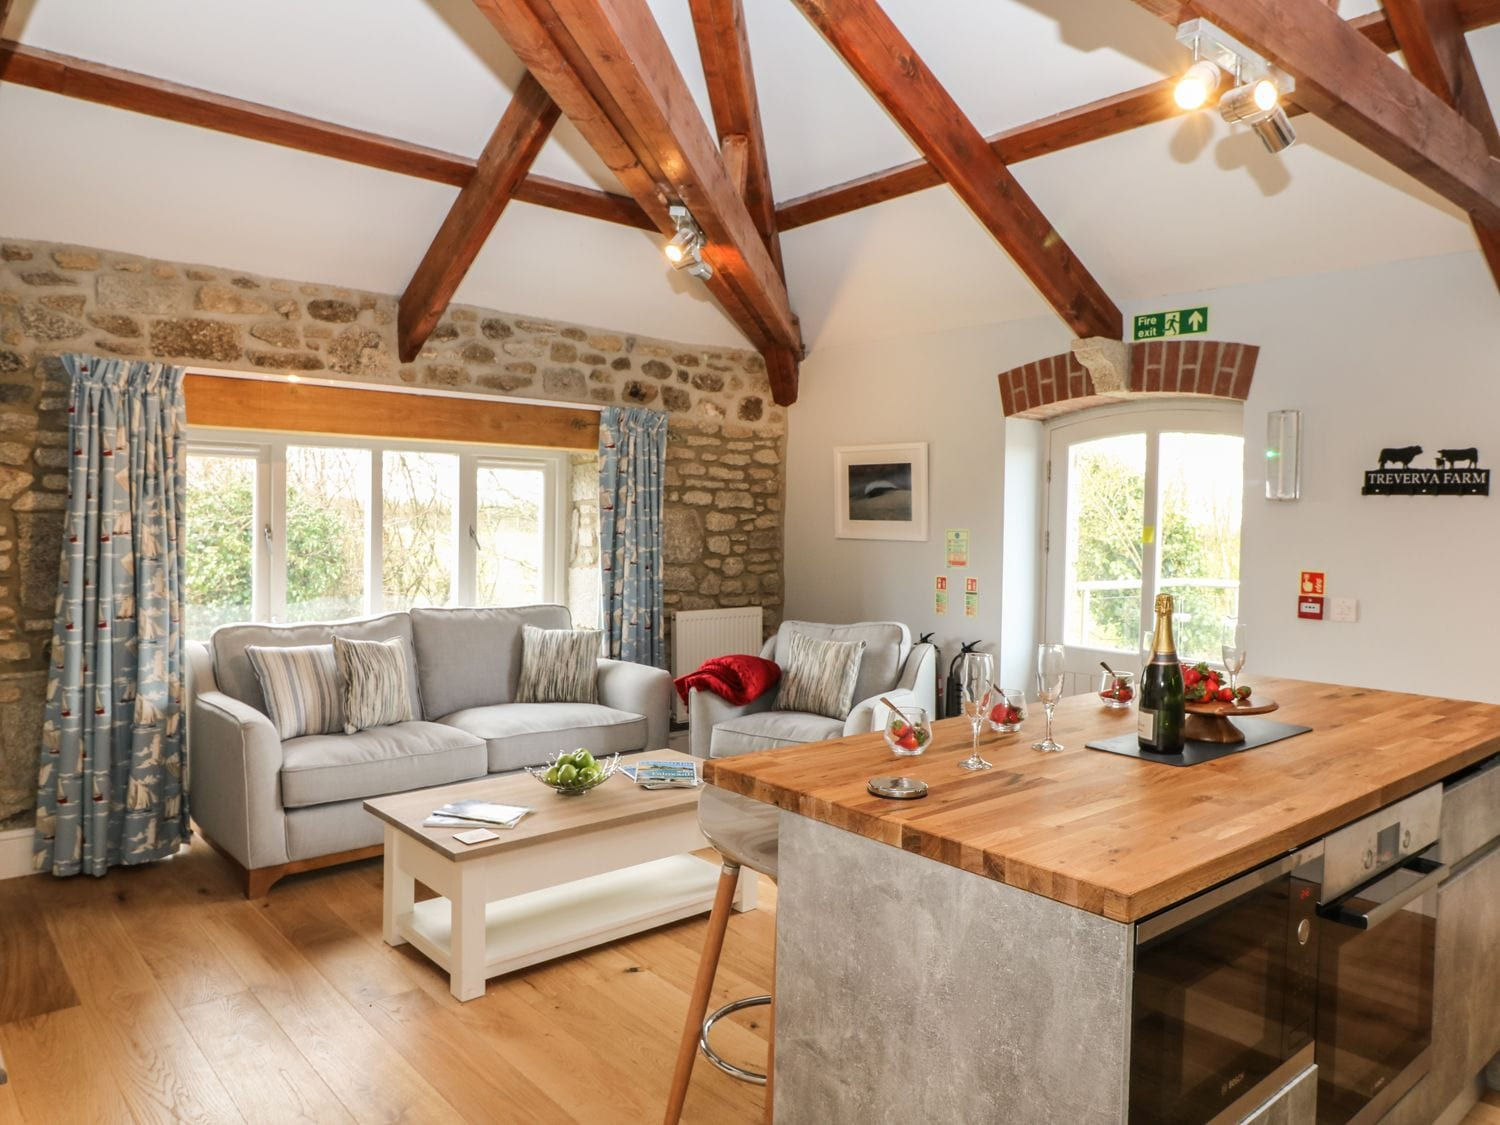 Living room kicthen interior with exposed stone wall and wooden beams.